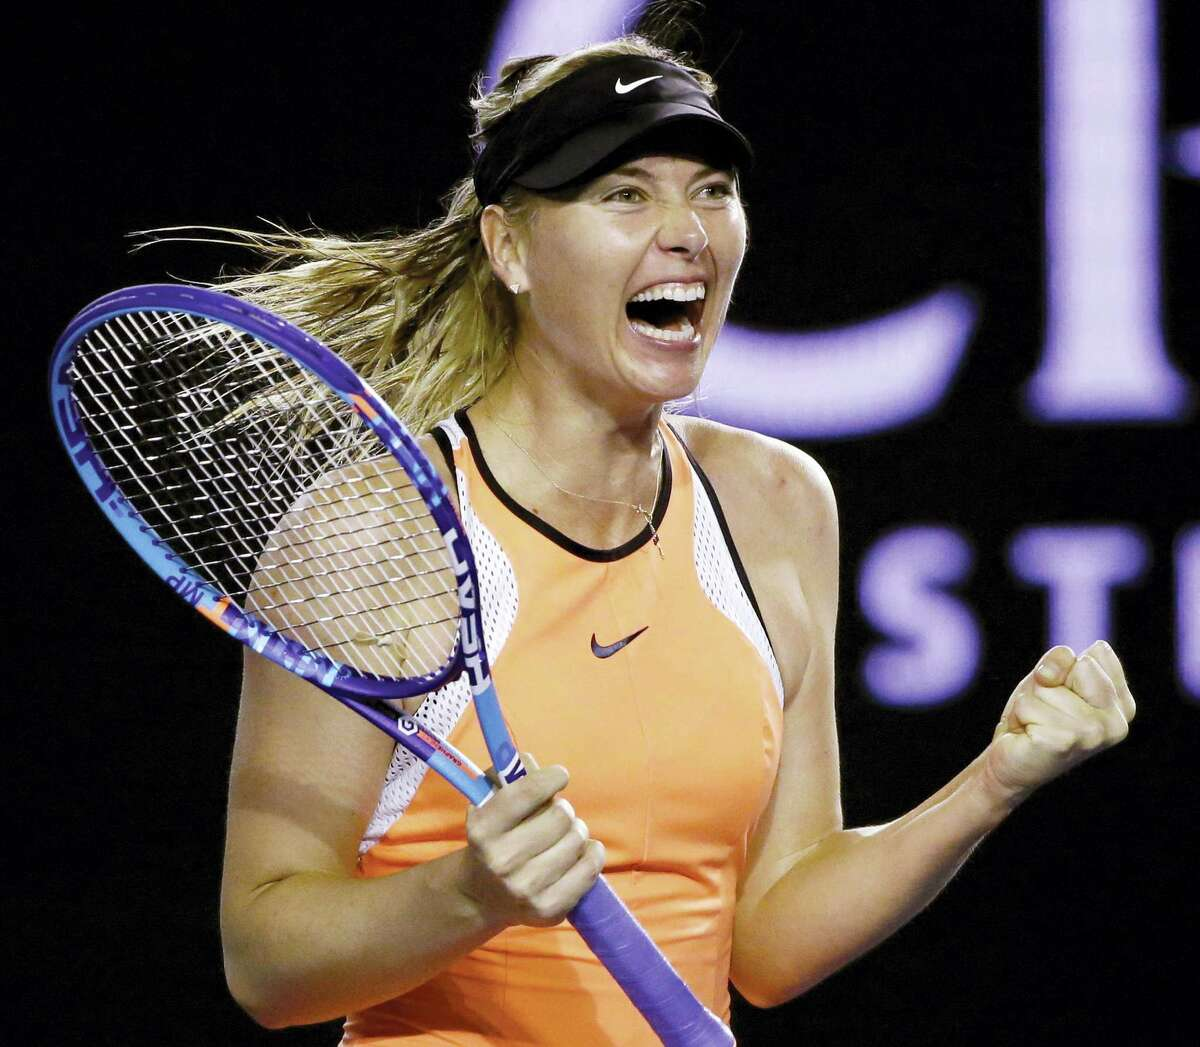 In this Sunday, Jan. 24, 2016, file photo, Maria Sharapova of Russia celebrates after defeating Belinda Bencic of Switzerland in their fourth round match at the Australian Open tennis championships in Melbourne, Australia. The five-time major champion says she failed a doping test at the Australian Open in January for the little-known drug, which became a banned substance under the WADA code this year. The former world No. 1 took full responsibility for her mistake when she made the announcement at a news conference Monday, March 7, 2016, in Los Angeles.